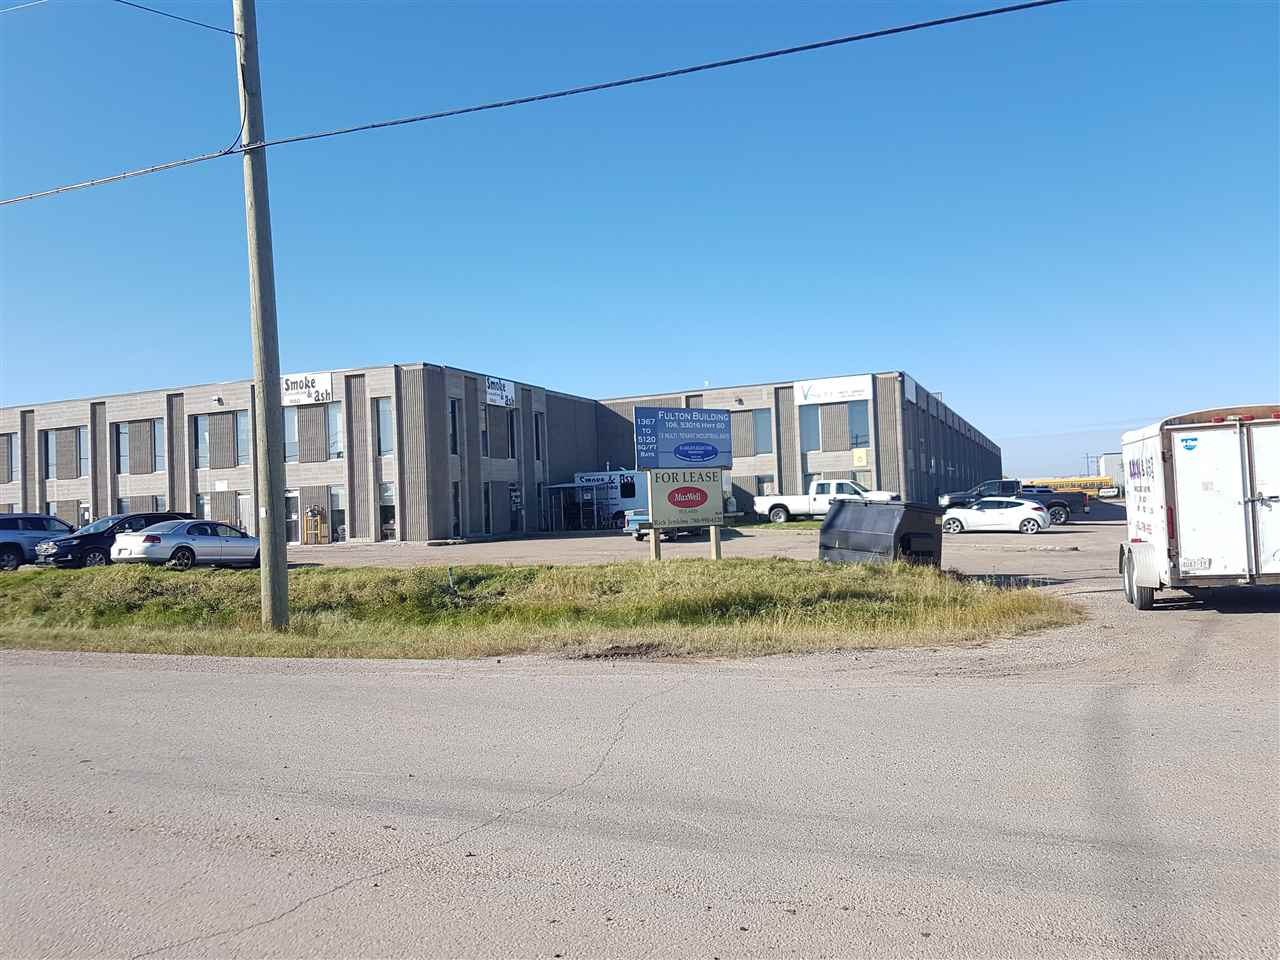 2,560 sf industrial bay. Wide open with only a new washroom. Build out to fit your needs. Two 12' X 16' OH doors. Man door front and back. 2 stage sump. 23' ceilings with over 19' clear. Large windows allow for plenty of light. Longer term escalating lease is preferred but shorter leases at higher rates will be considered.  Other bays are available including up to 7,680 sf contiguous. Former restaurant space of 1,367 sf with mezzanine also available.